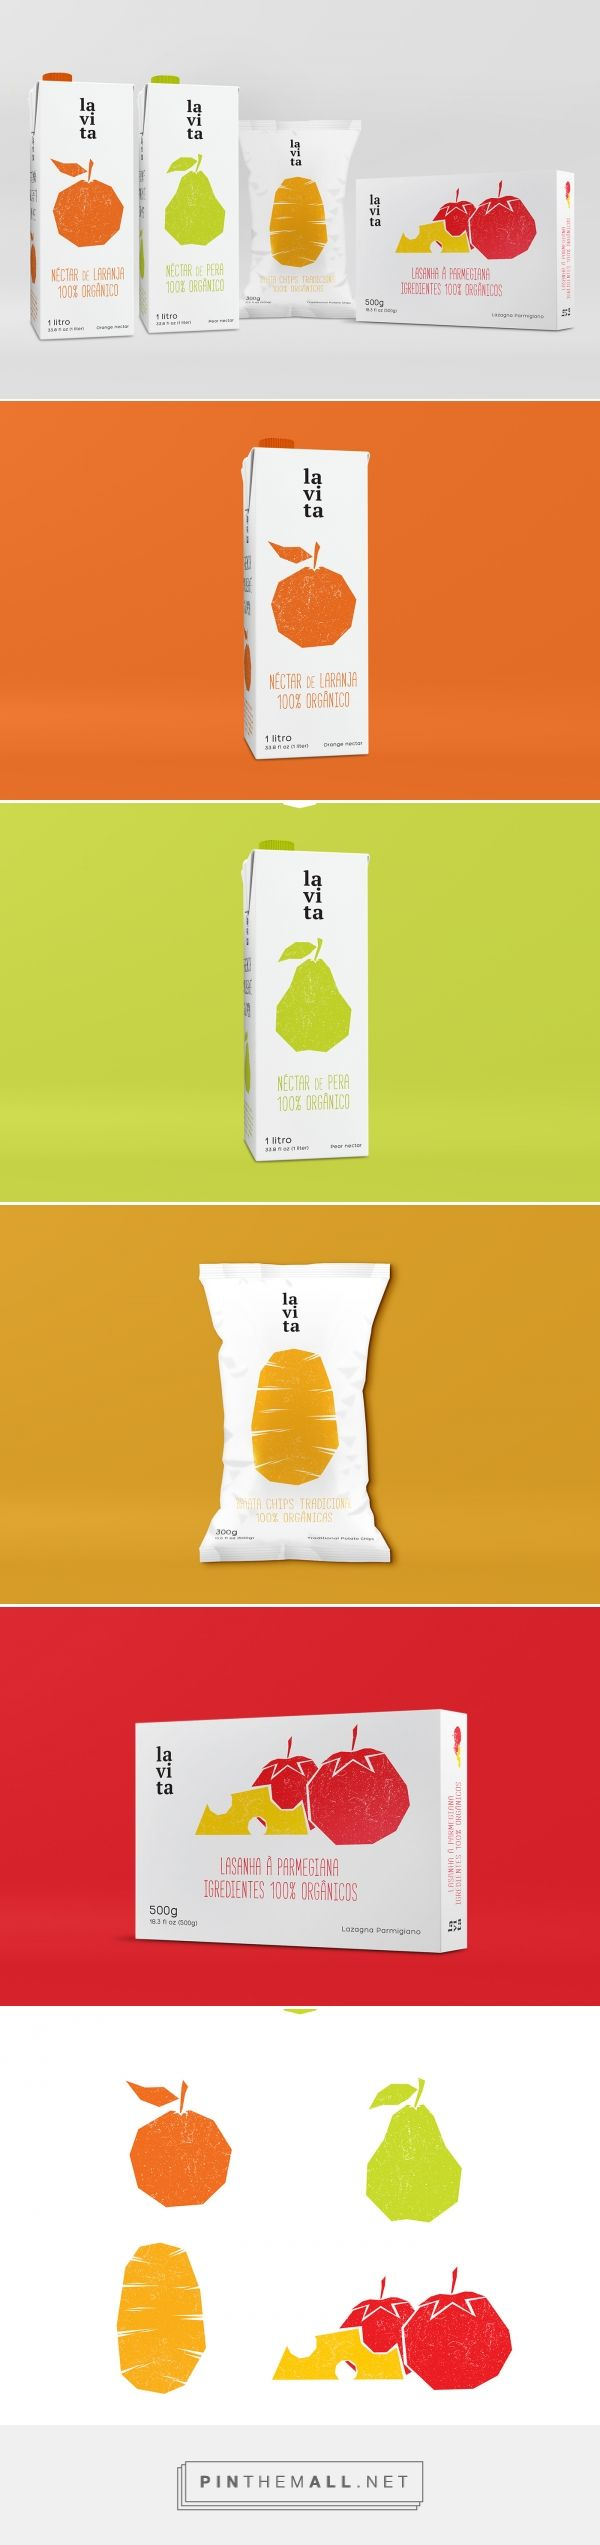 La Vita / A set of packages for the retail commerce in the brazilian market with focus on natural and organic products. by Felipe Mesquita